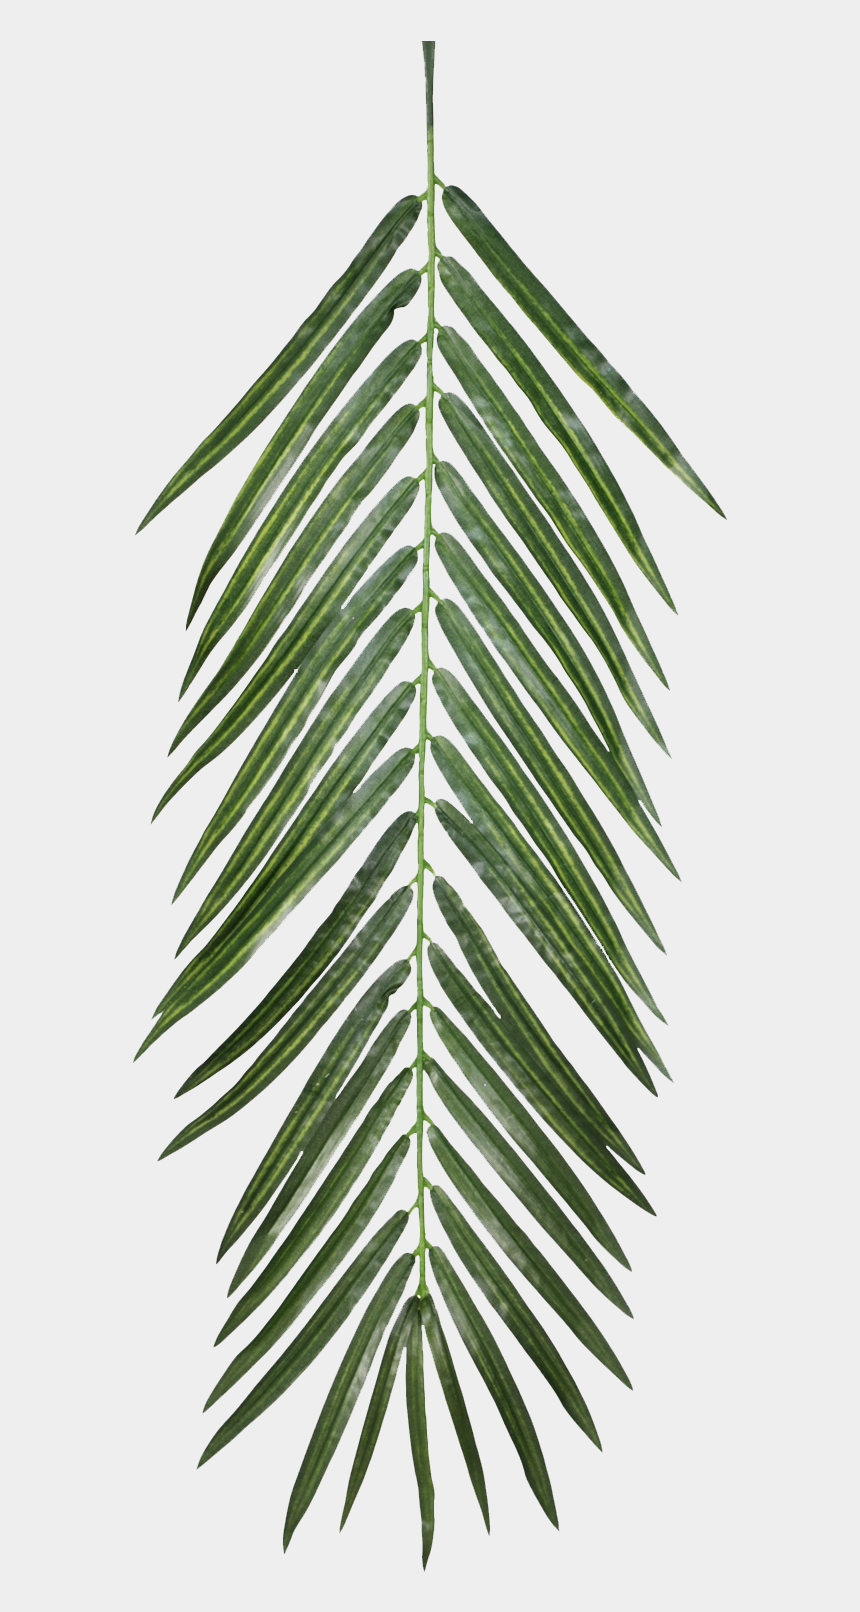 sand clipart texture, Cartoons - Plant Opacity Texture Mapping Leaf - Palm Tree Leaf Texture